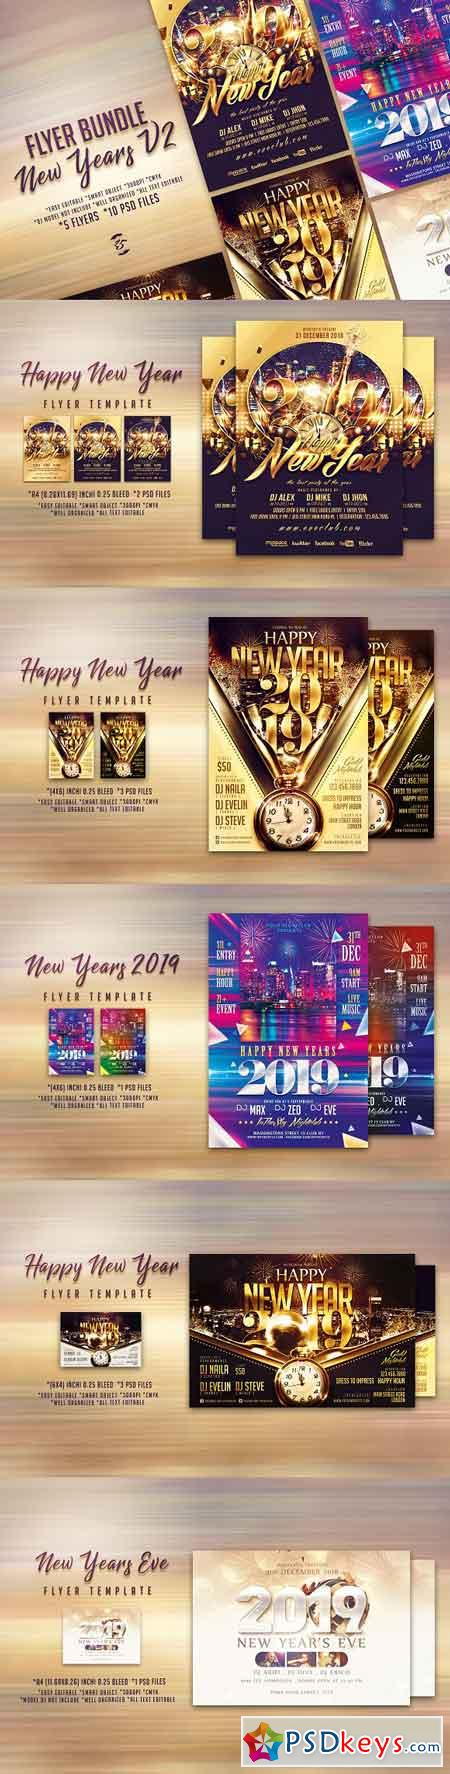 New Years Flyer Bundle V2 3286191